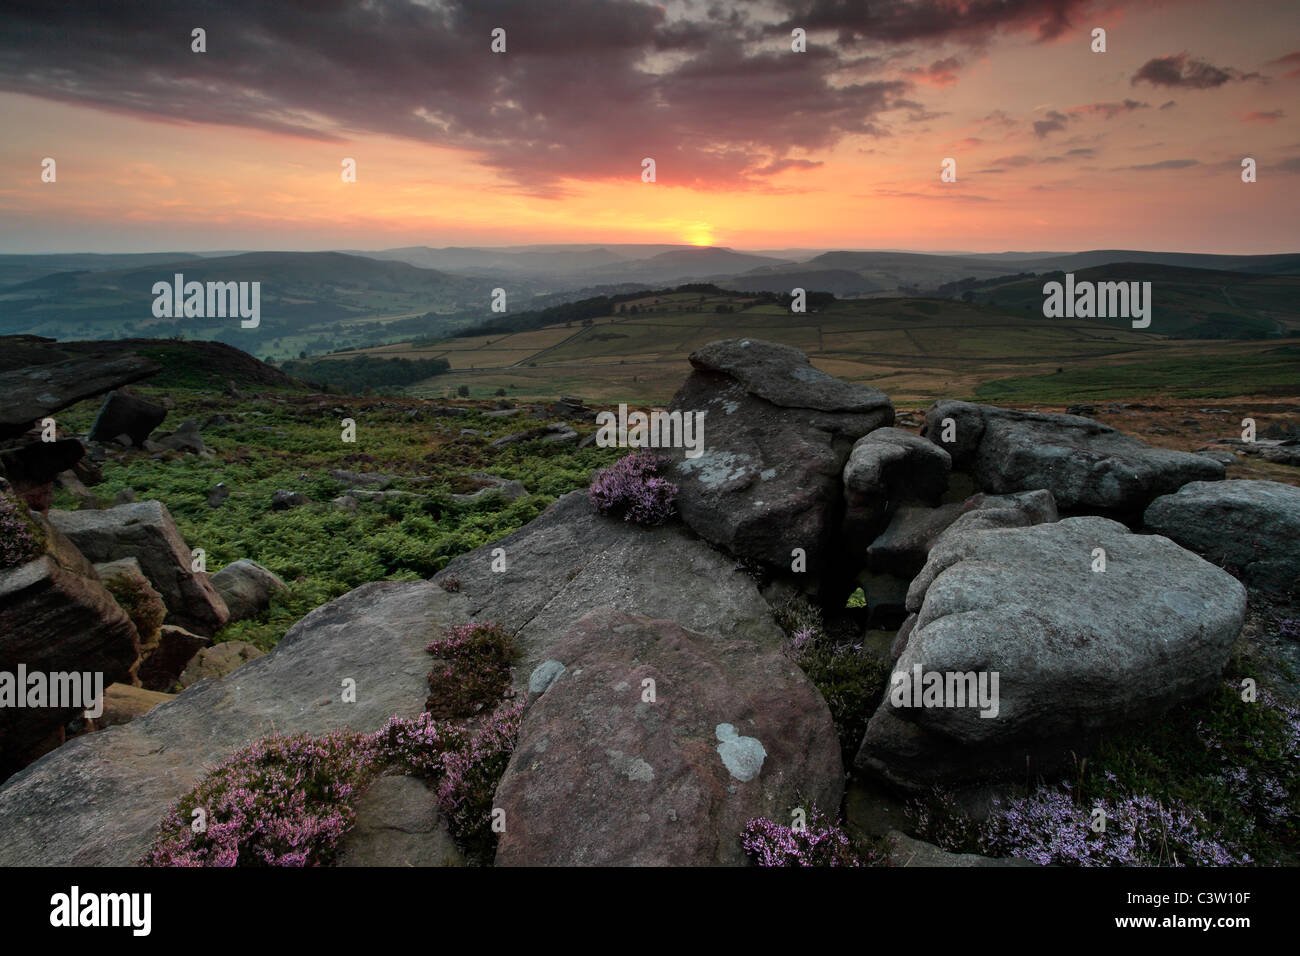 Sunset over the rocky landscape of the Peak District as seen near Owler Tor near Hathersage - Stock Image